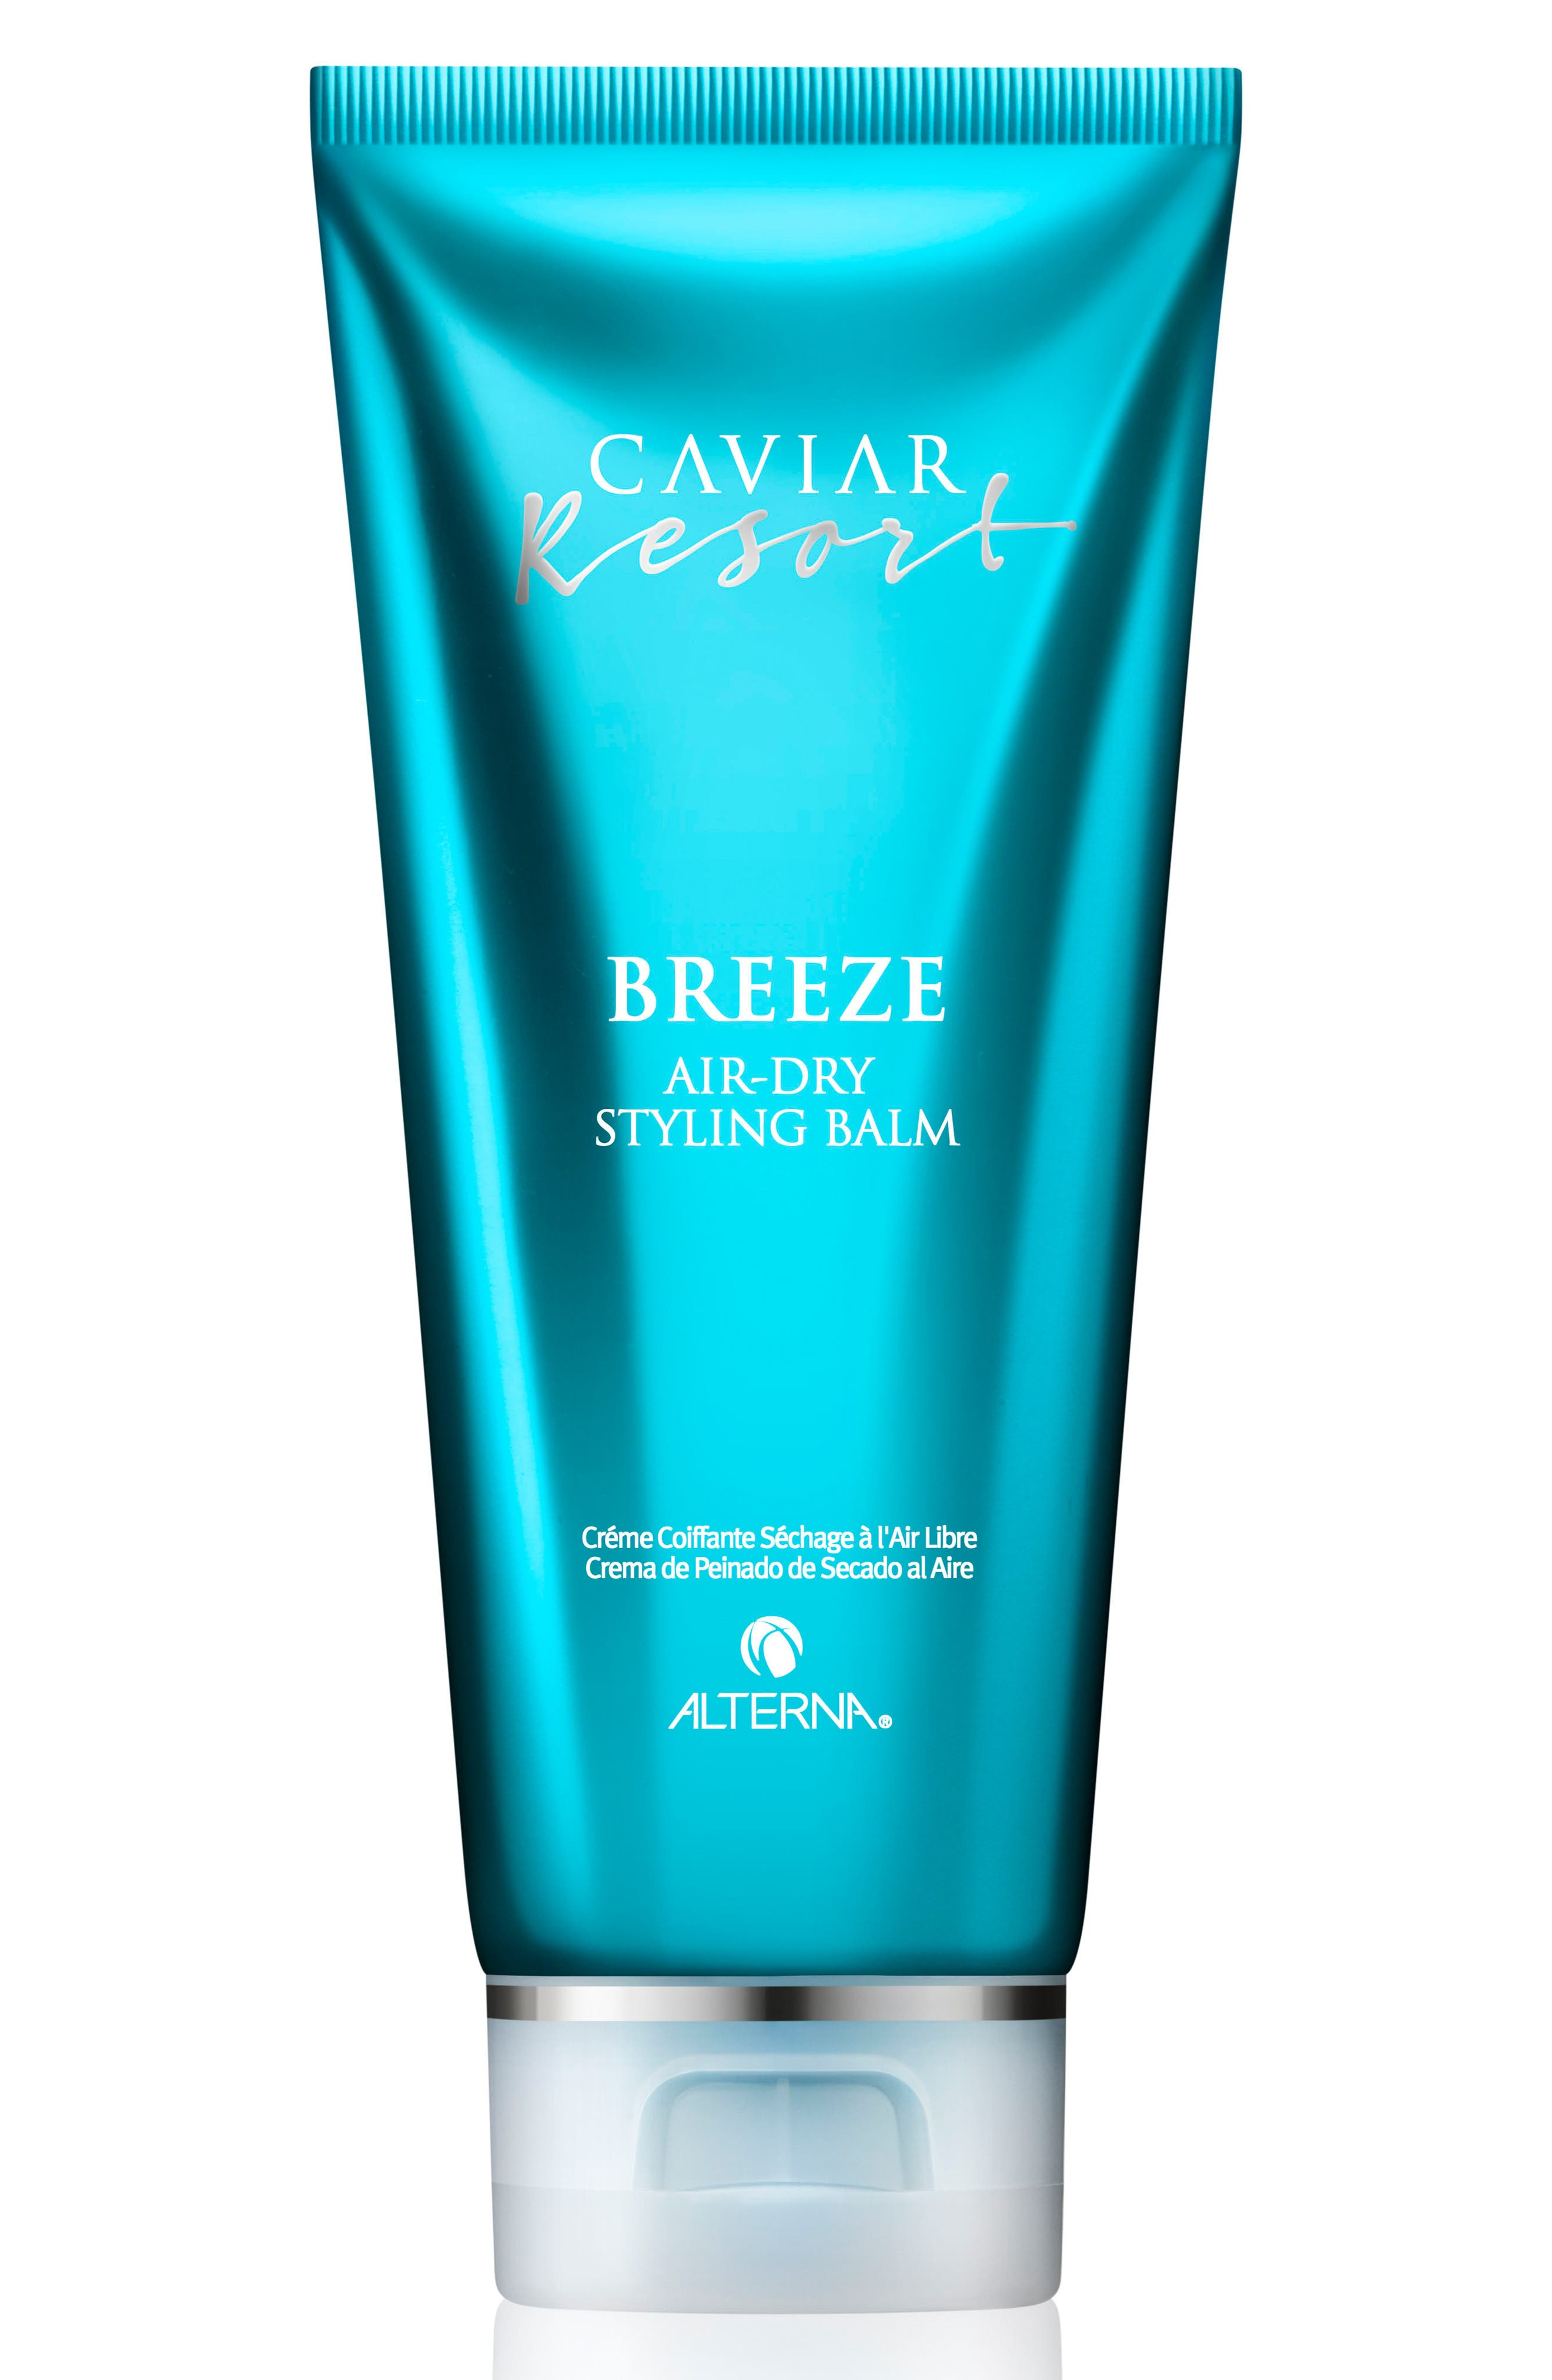 Caviar Resort Breeze Air-Dry Styling Balm,                             Main thumbnail 1, color,                             No Color